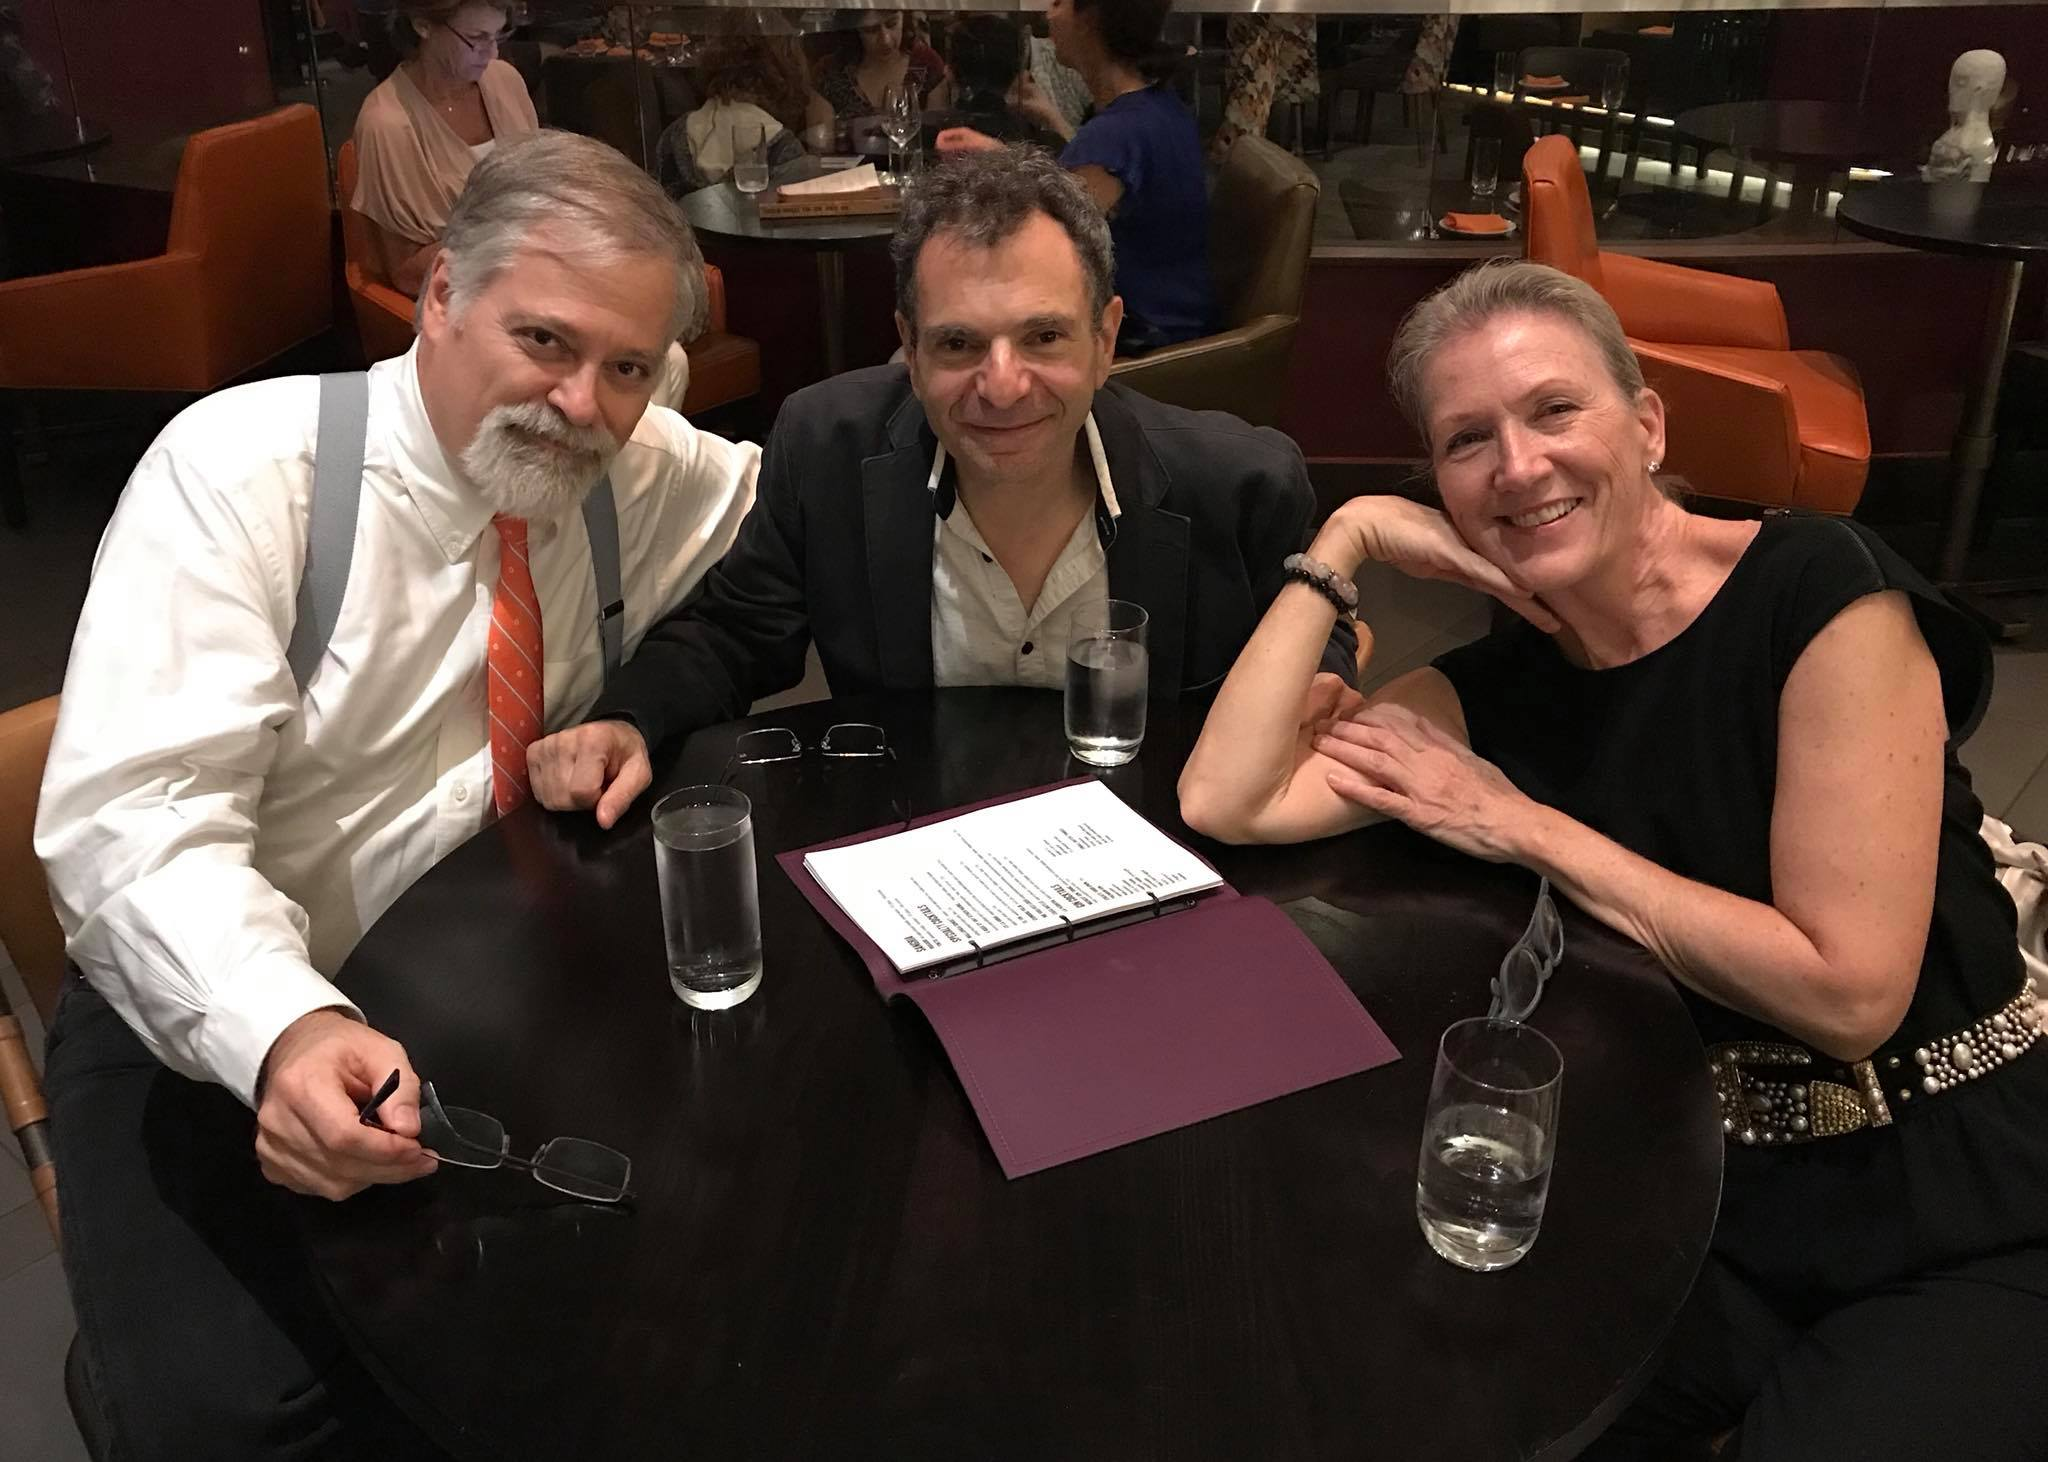 The  Woman in Morocco  creative team, (l to r) Daron Hagen, Roger Zahab, and Barbara Grecki in Chicago, September 2018.